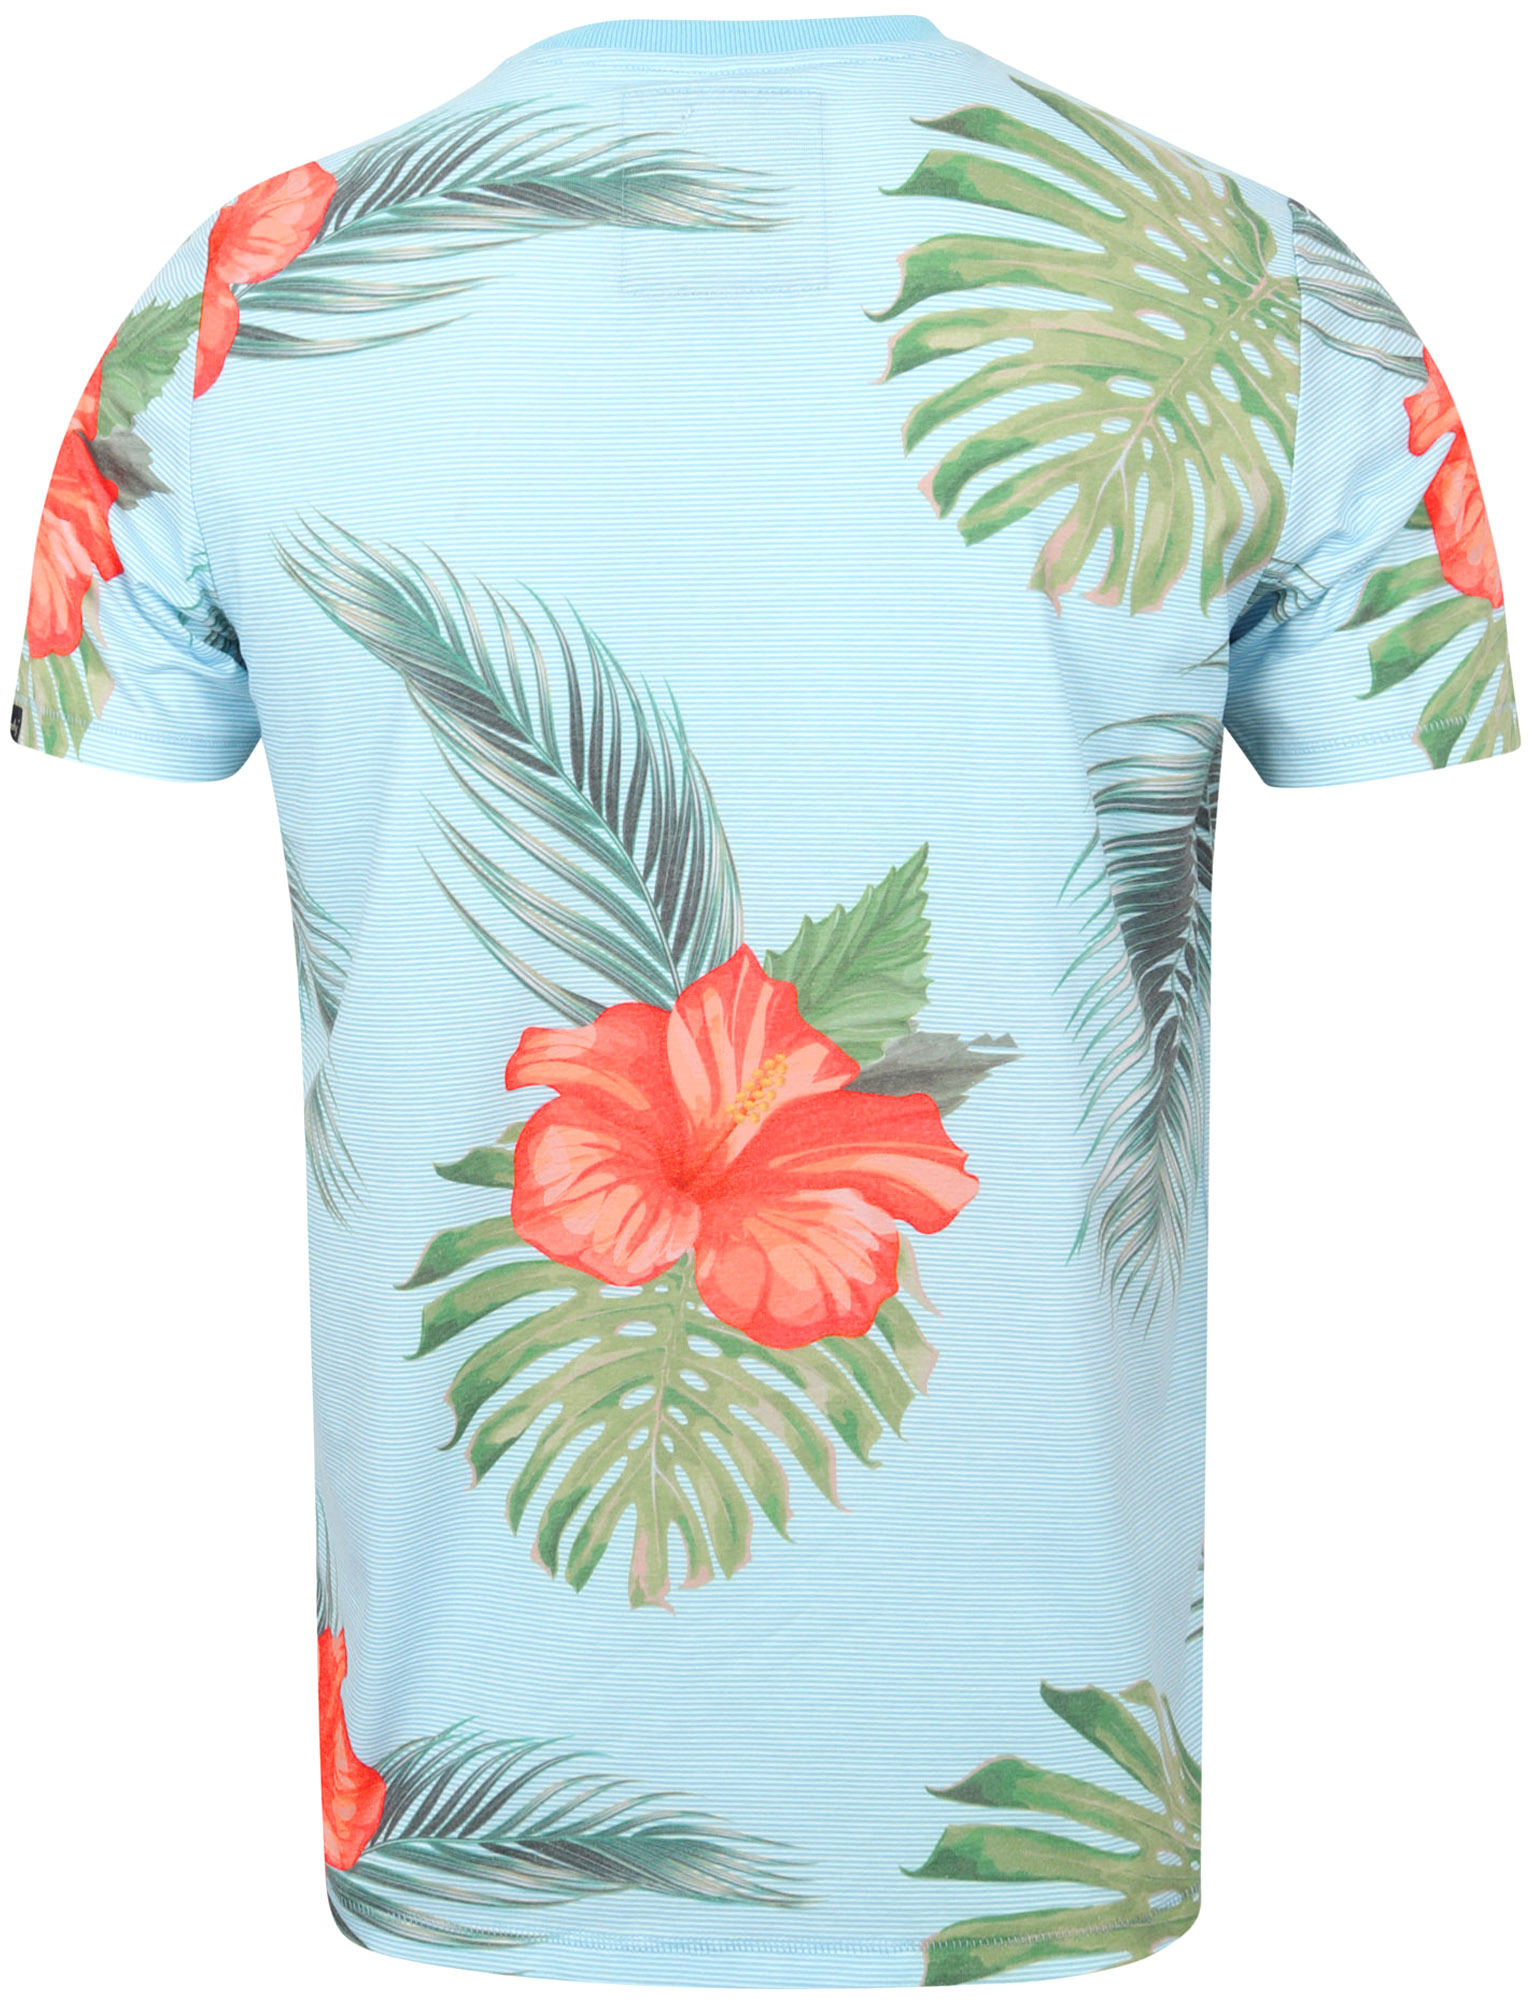 Tokyo-Laundry-Tropical-Print-Crew-Neck-T-Shirt-Hawaiian-Floral-Summer-Holiday thumbnail 29